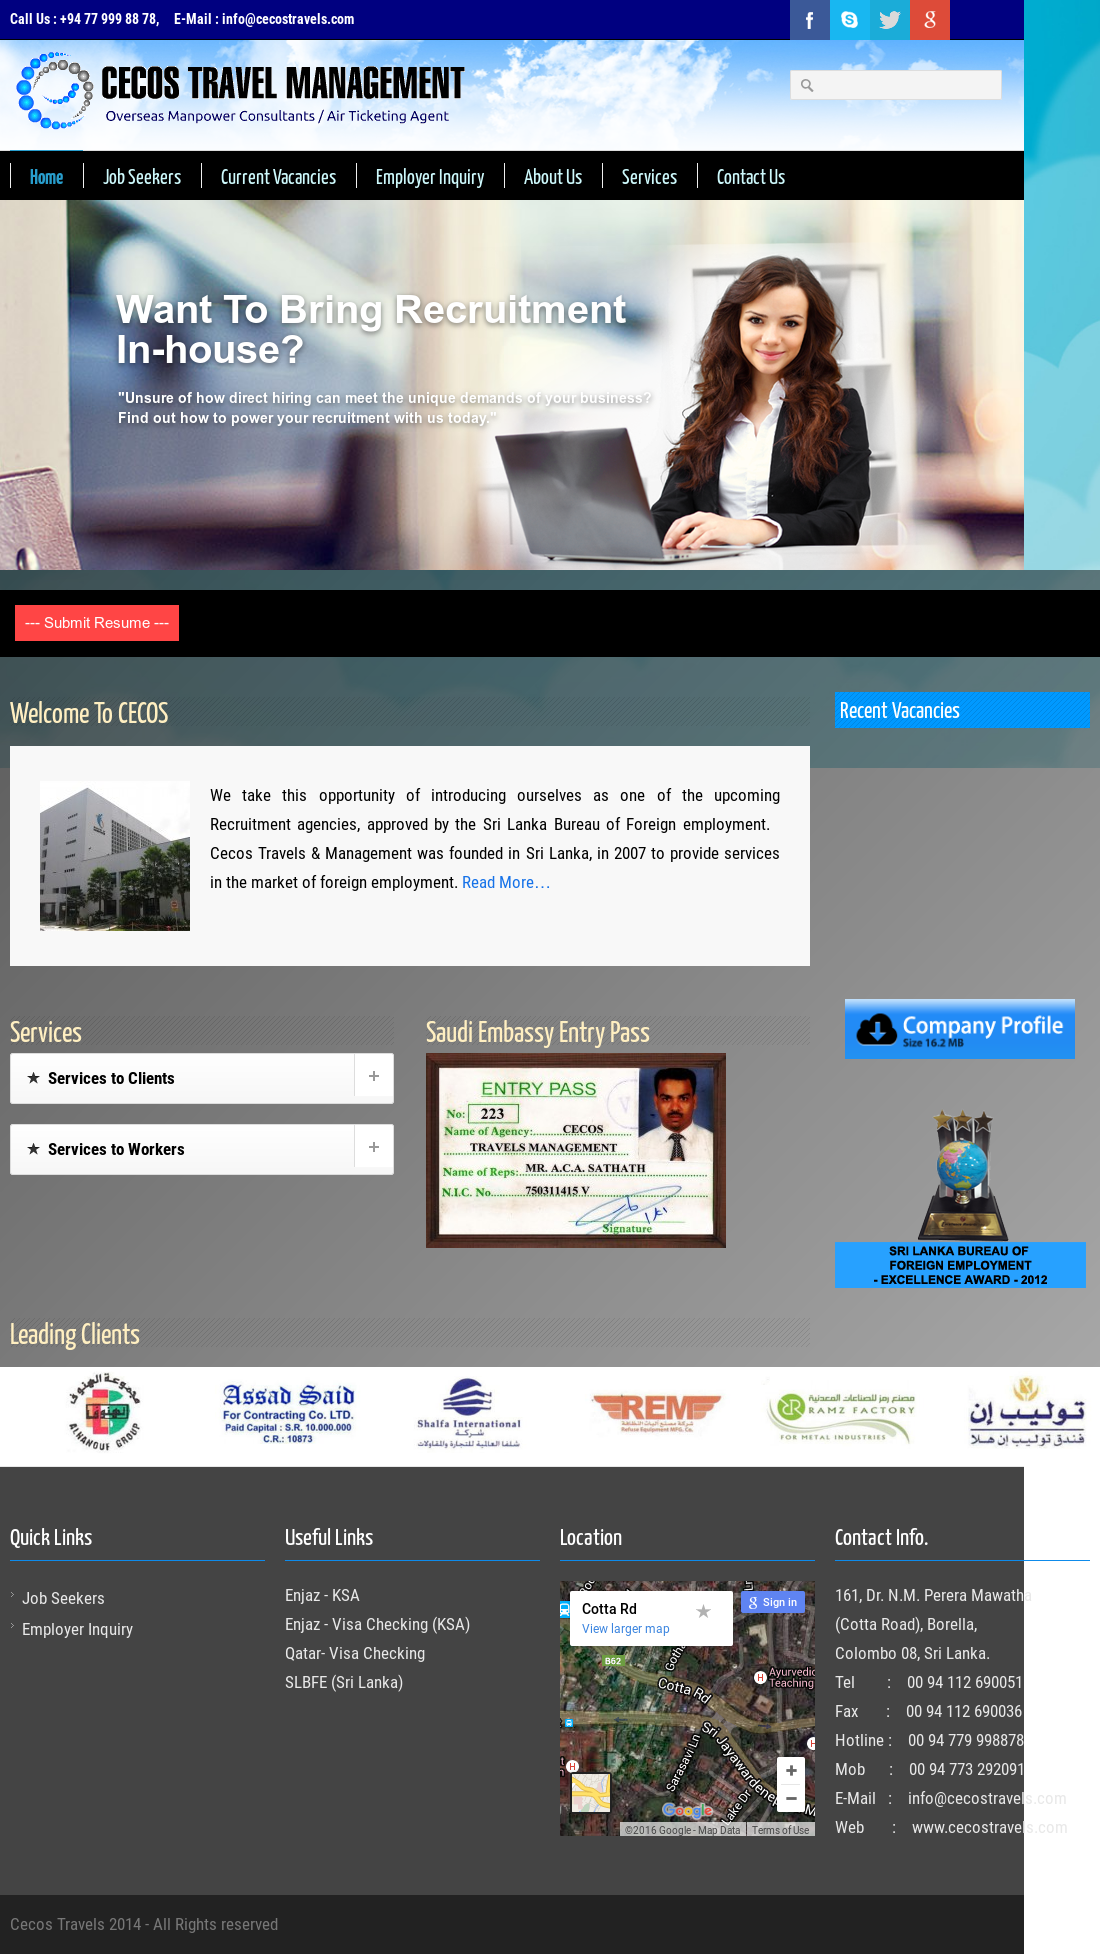 Cecos Travels Management website history Cecos Travels